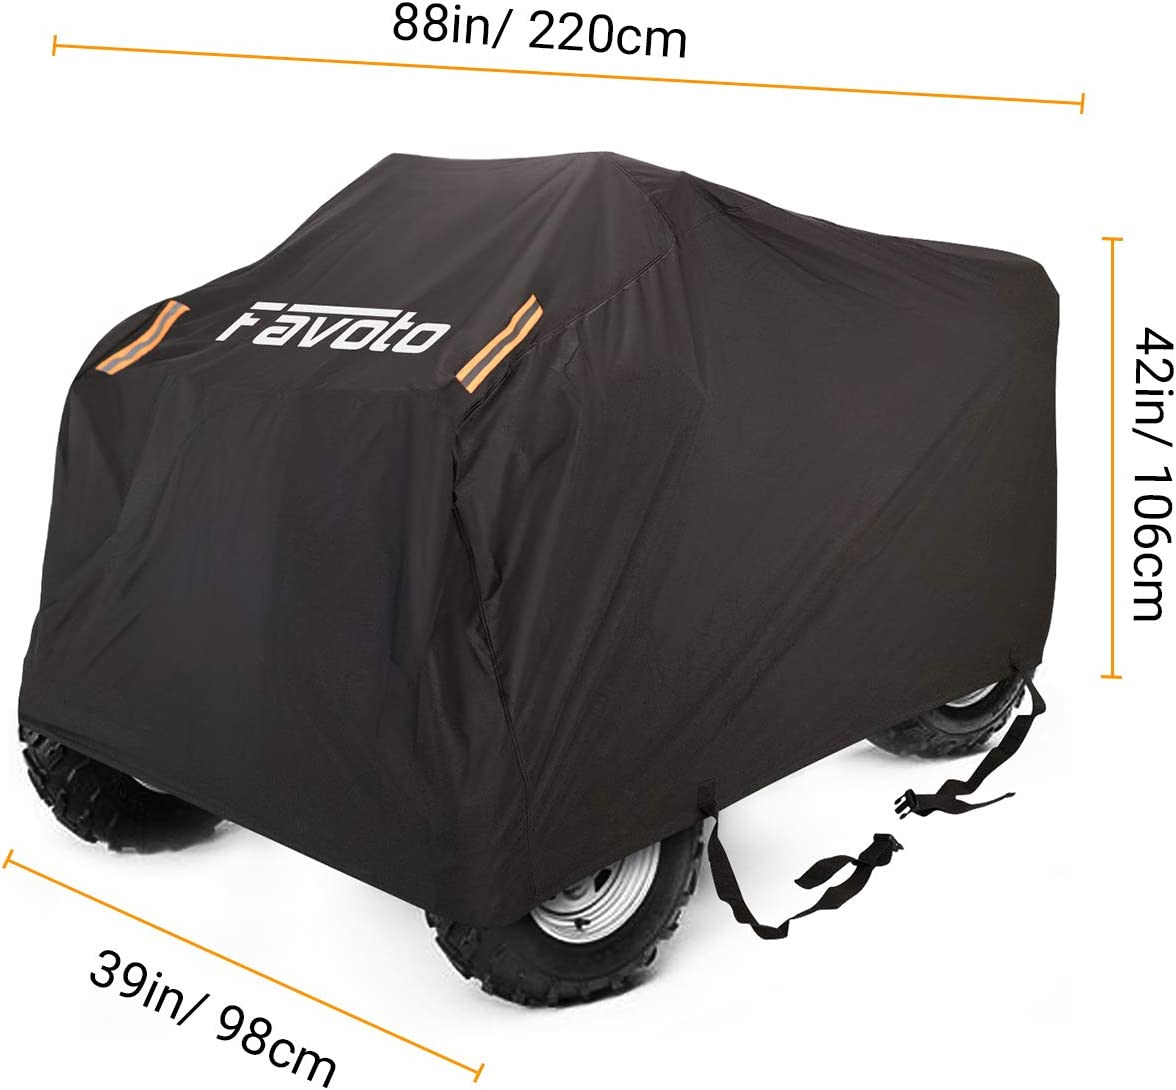 "Favoto Waterproof ATV ATC Cover Quad Bike 4 wheeler Cover Durable Night Reflective Strips with Carrying Bag Dust Sun Wind Rain Leaves Outdoor Protection 88/"" L x 39/"" W x 42/"" H Universal Fit"